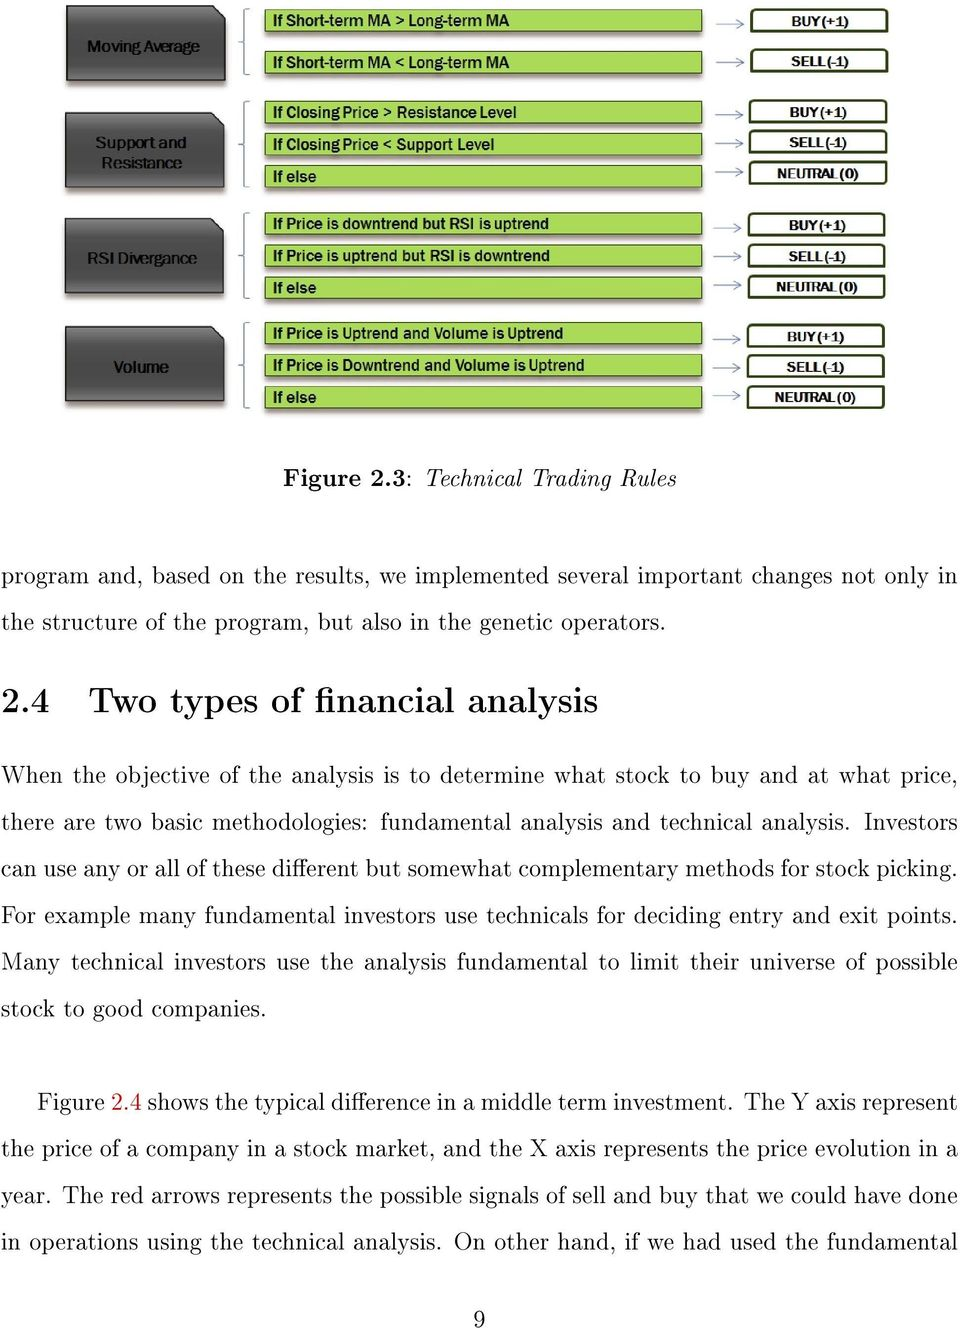 4 Two types of nancial analysis When the objective of the analysis is to determine what stock to buy and at what price, there are two basic methodologies: fundamental analysis and technical analysis.